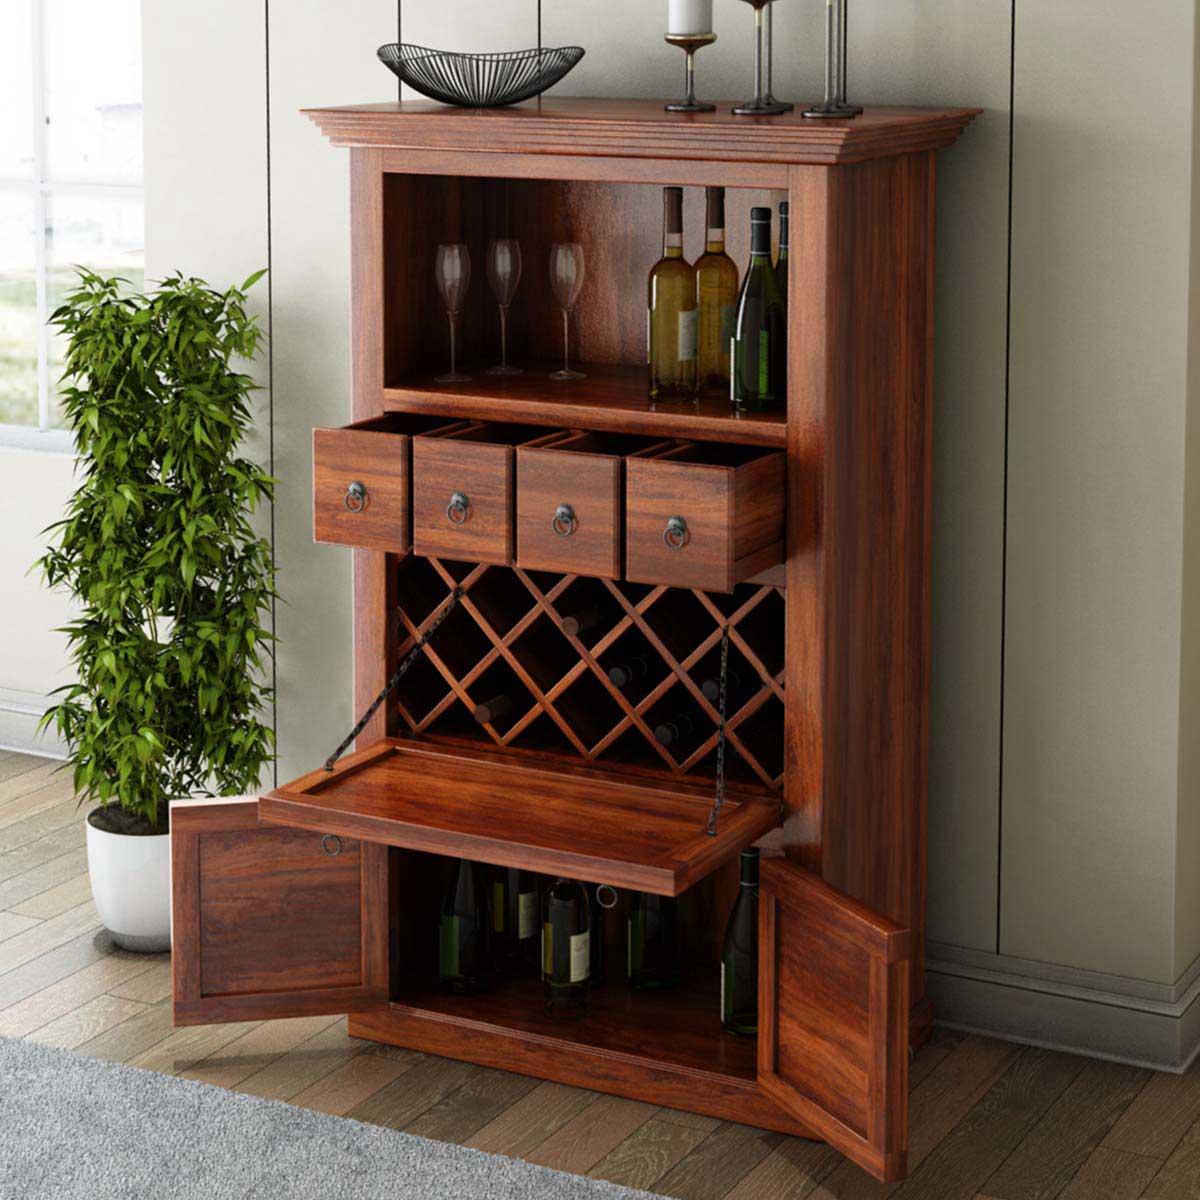 Wood Wine Storage Alabama Spacious Handcrafted Solid Wood Bar Cabinet With